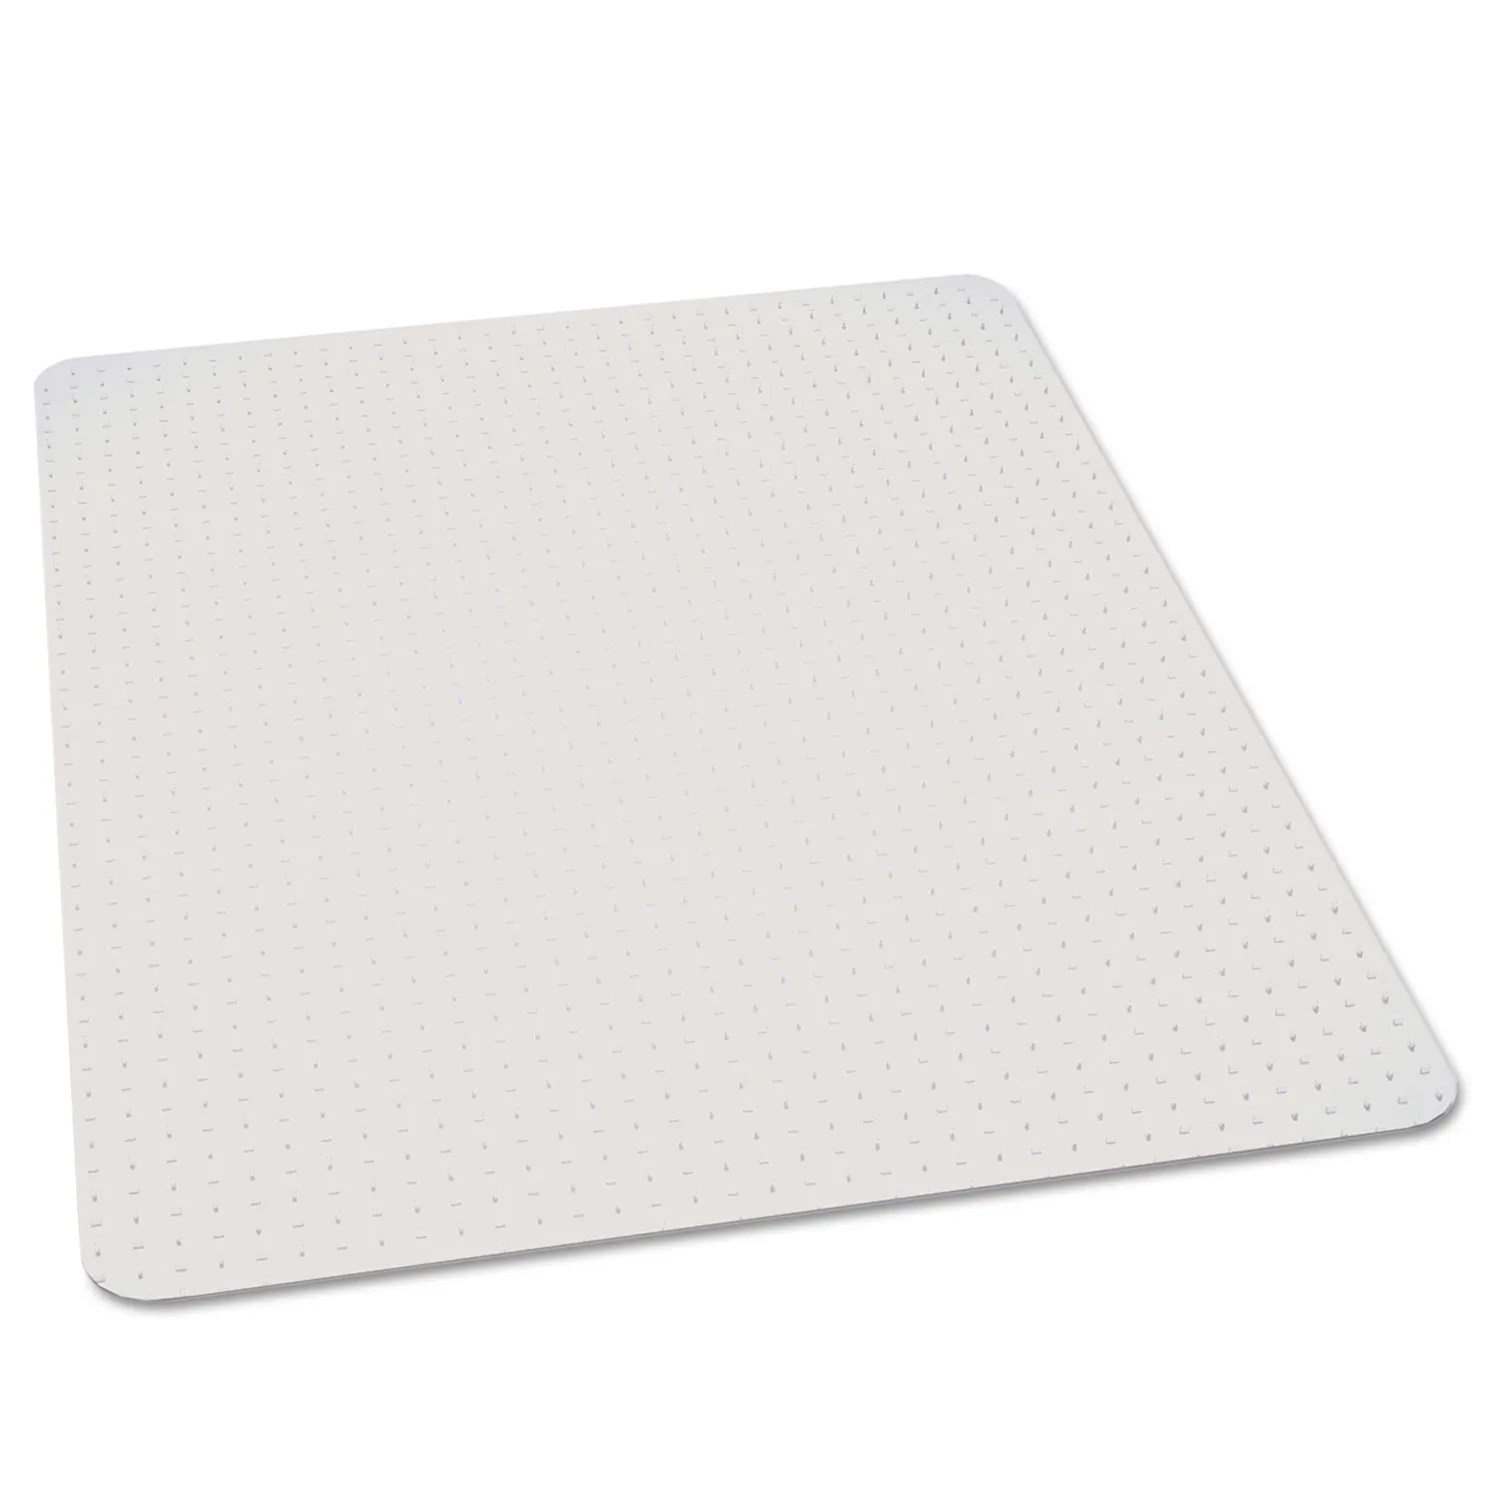 Es Robbins Chair Mat 46x60 Rectangle Chair Mat Multi Task Series Anchorbar For Carpet Up To 3 8